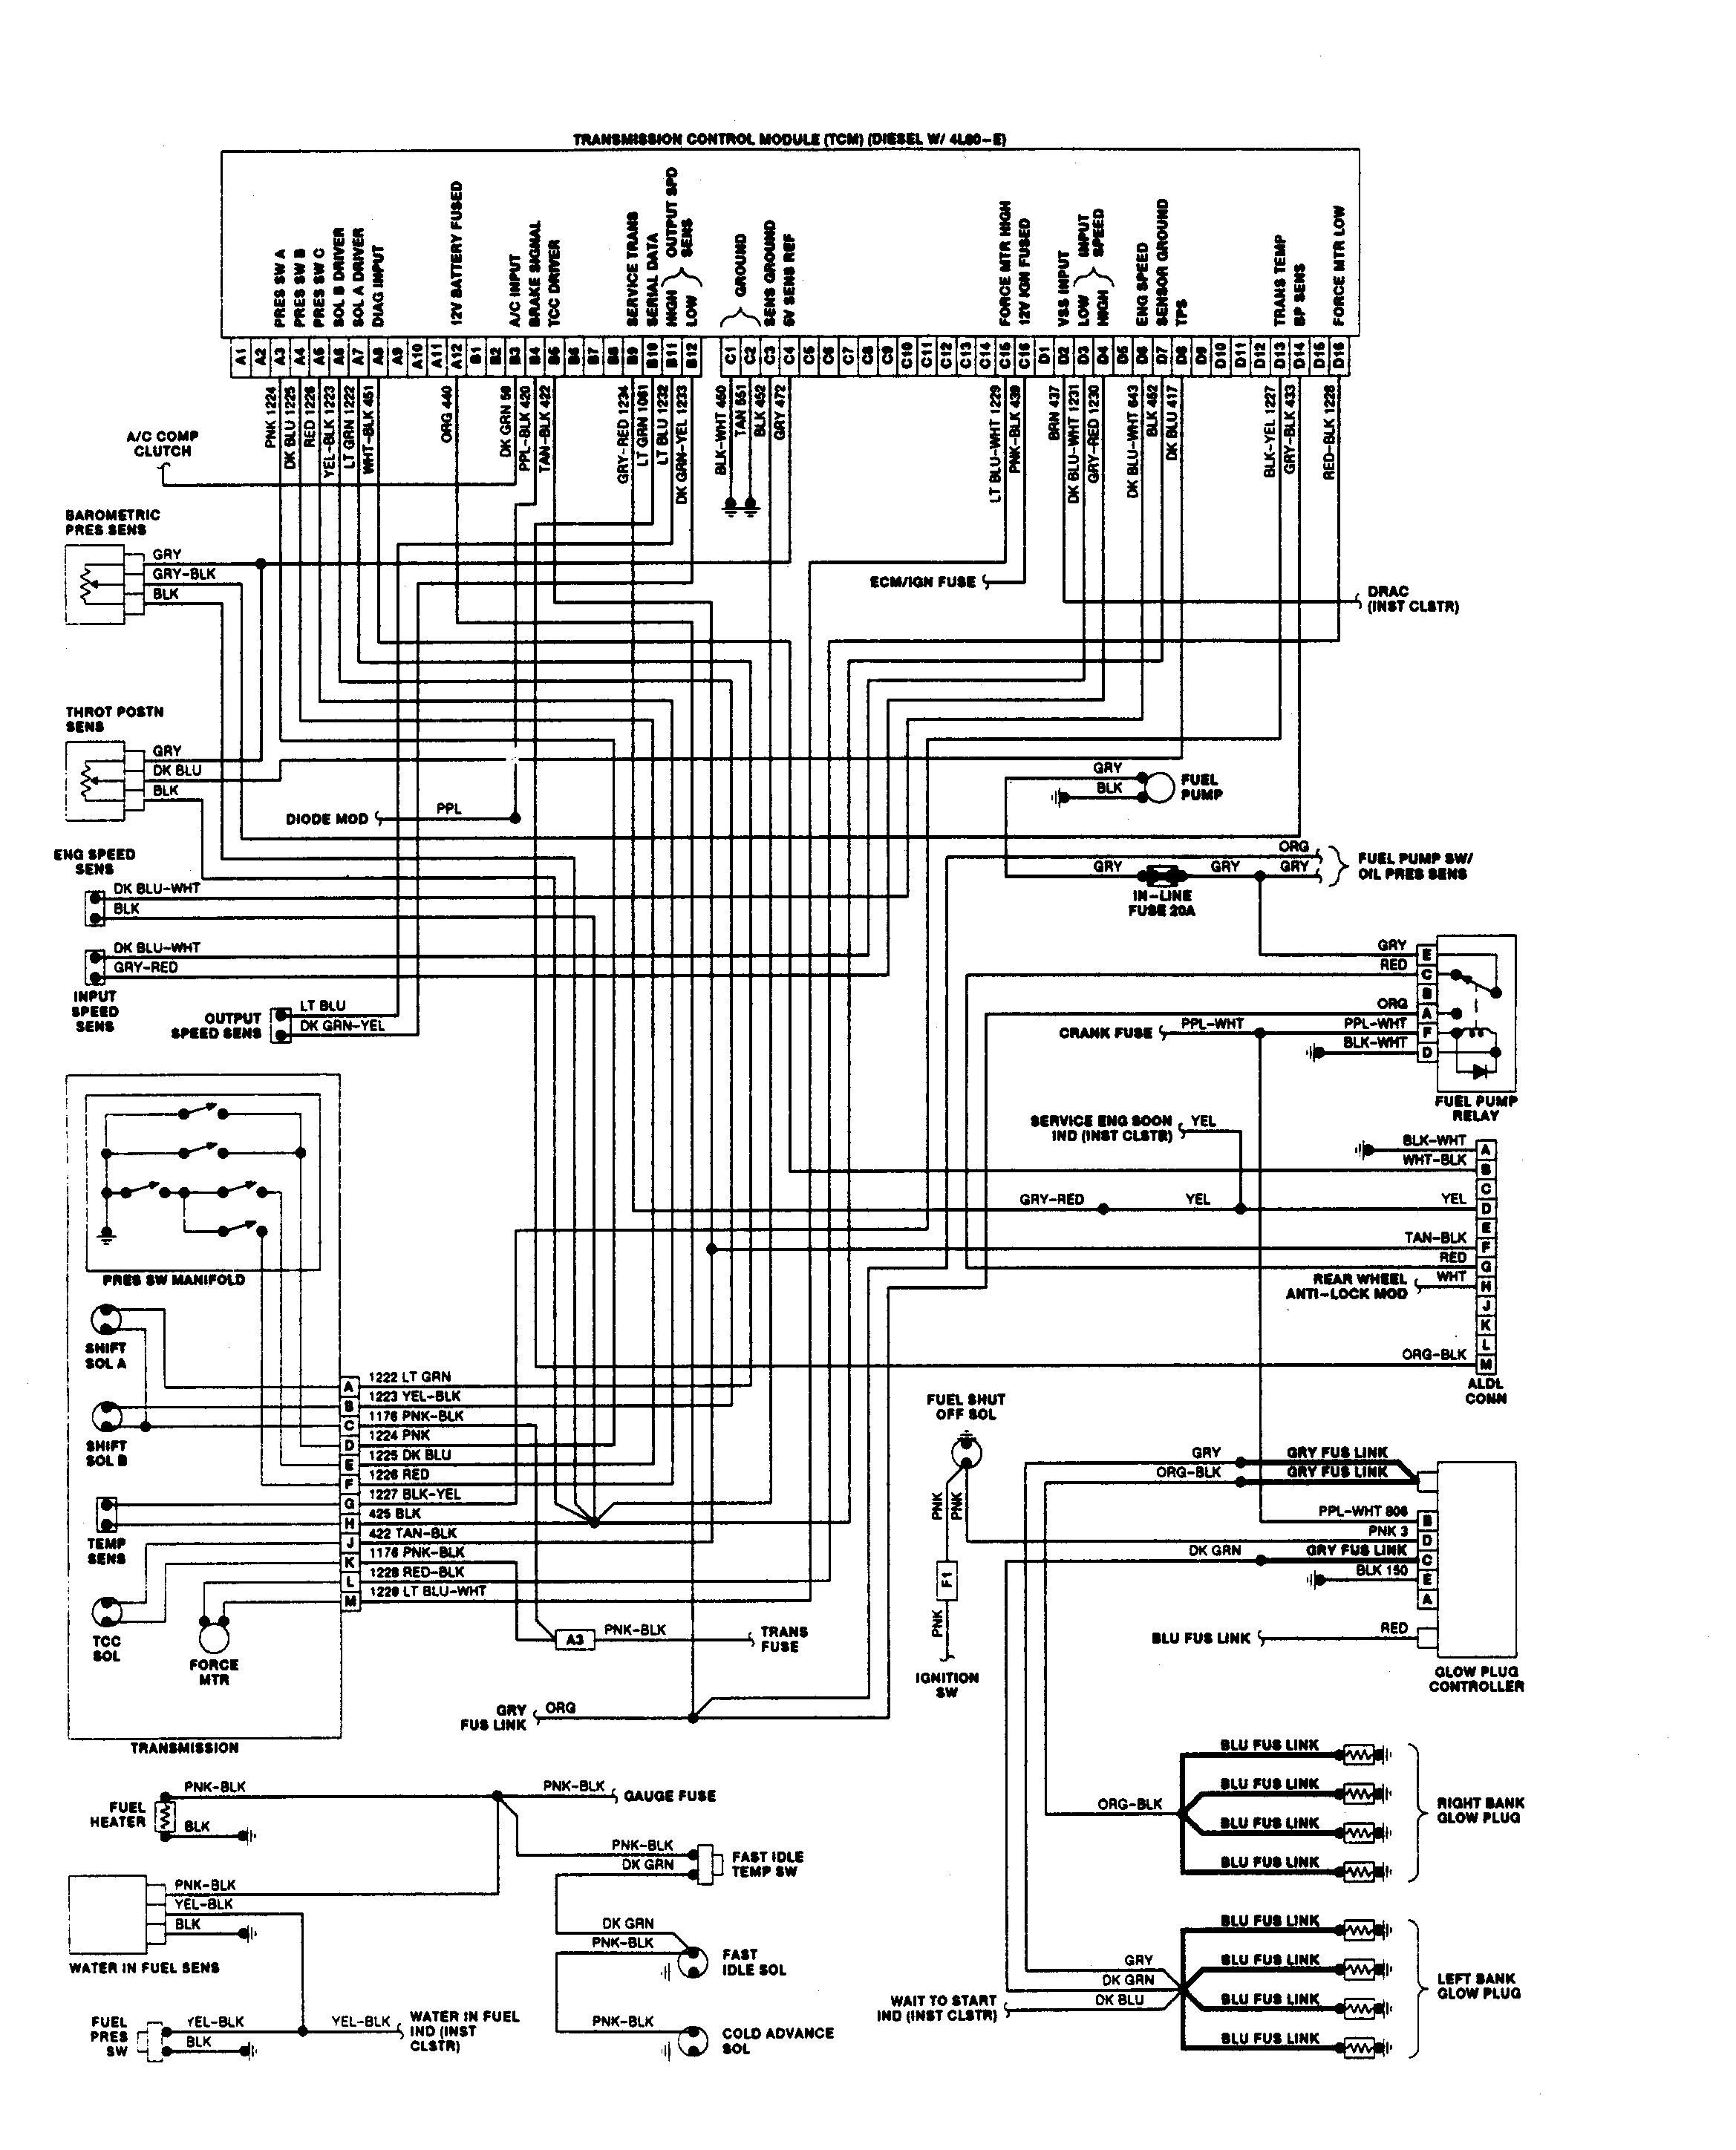 p30 ecu pinout diagram schematic wiring diagramp30 ecu pinout diagram wiring diagram 2007 ridgeline ecu wirimg [ 2338 x 2896 Pixel ]